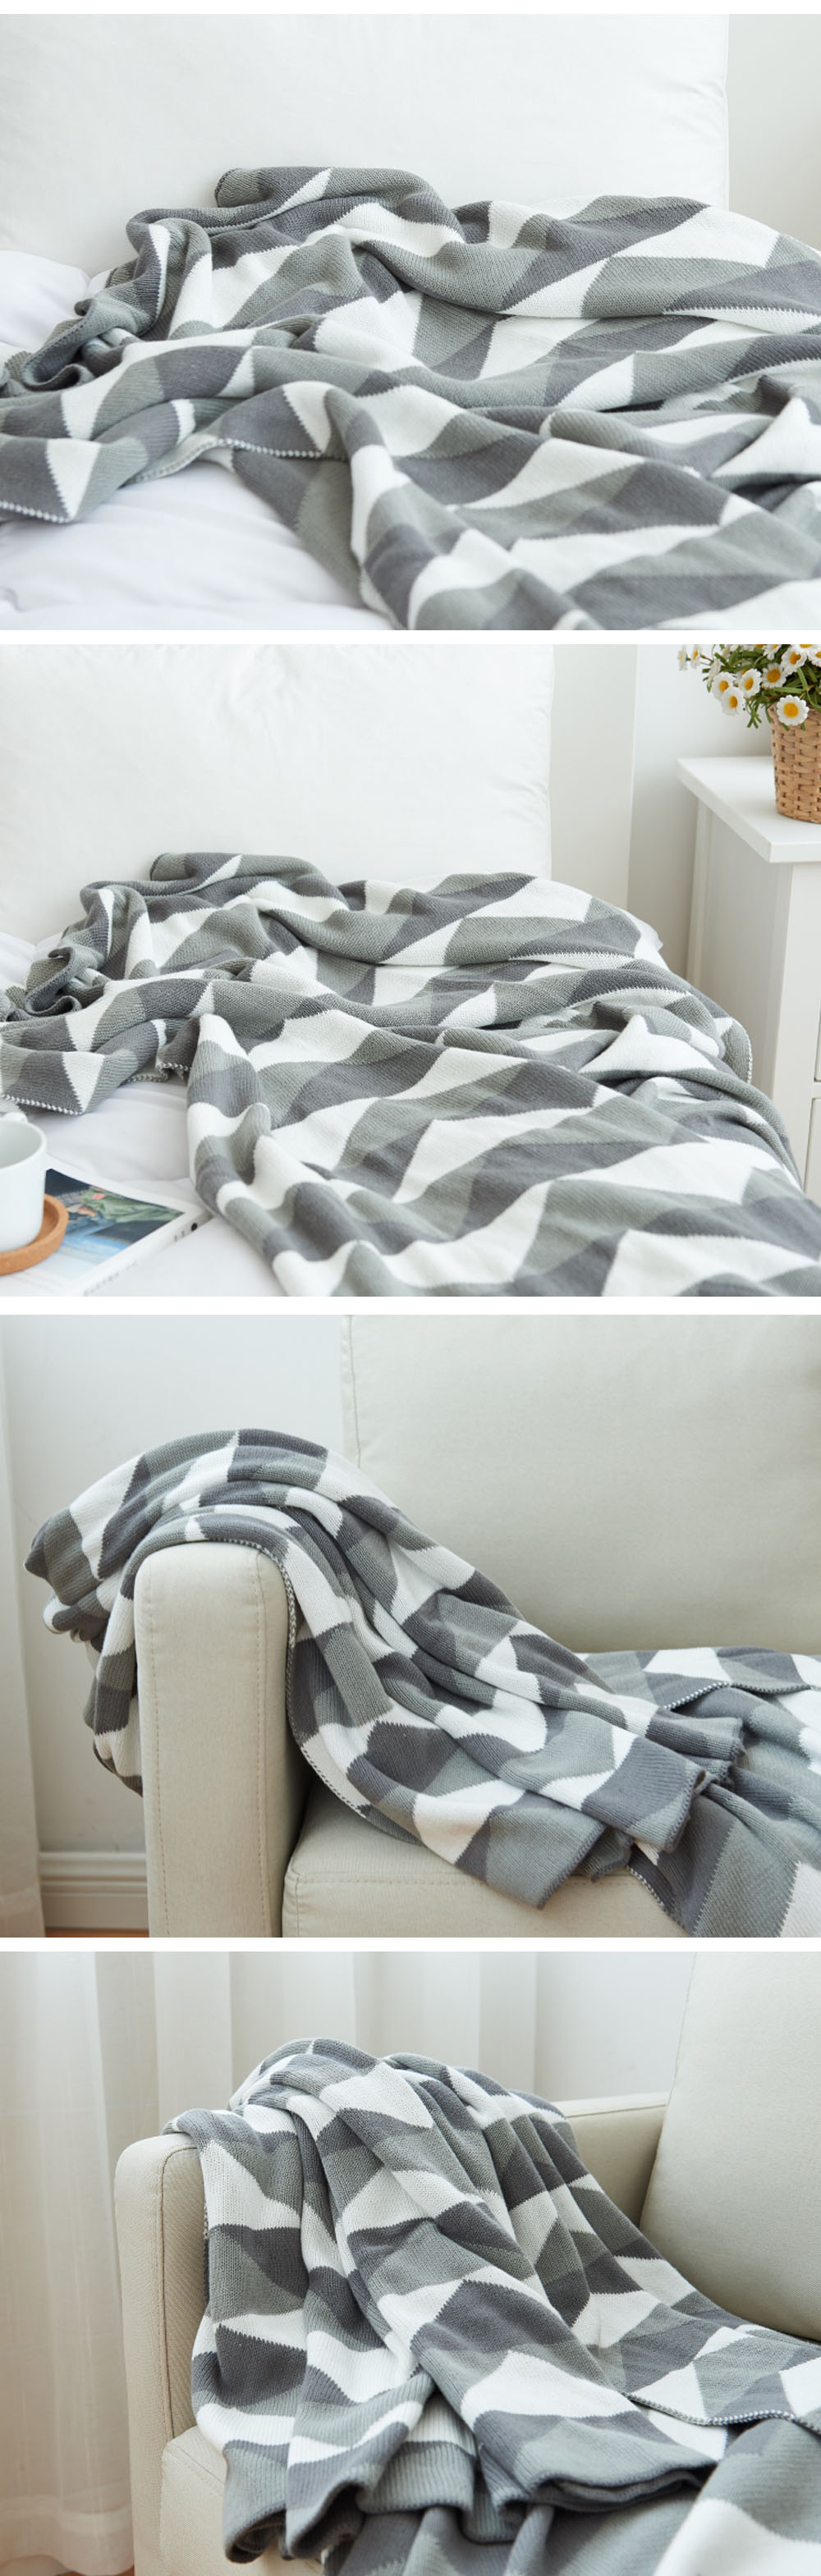 Two Tone Blanket Made of Cotton